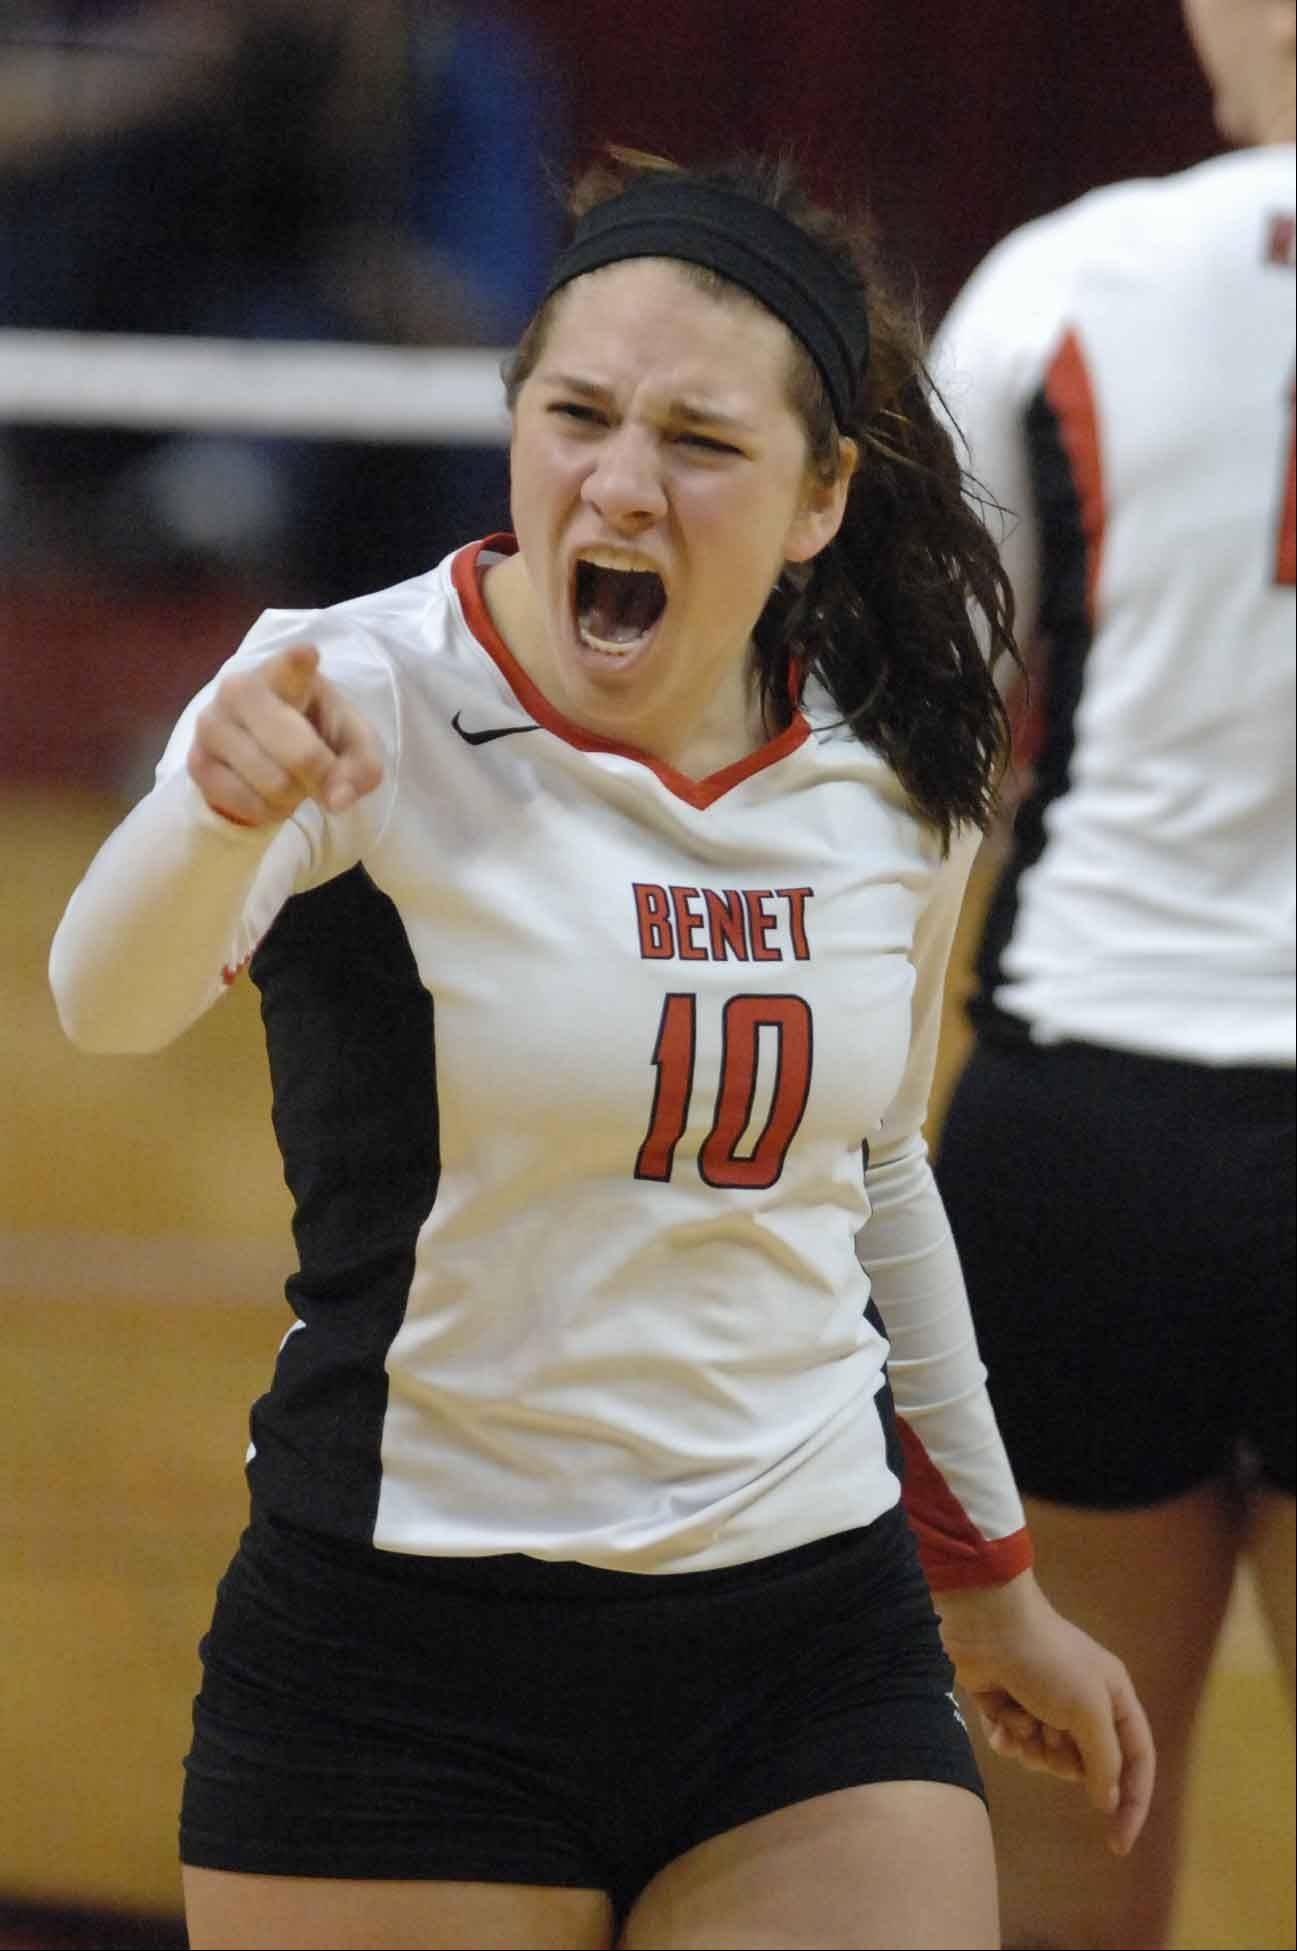 Benet vs. Cary in the Class 4A volleyball championship in Normal Saturday.